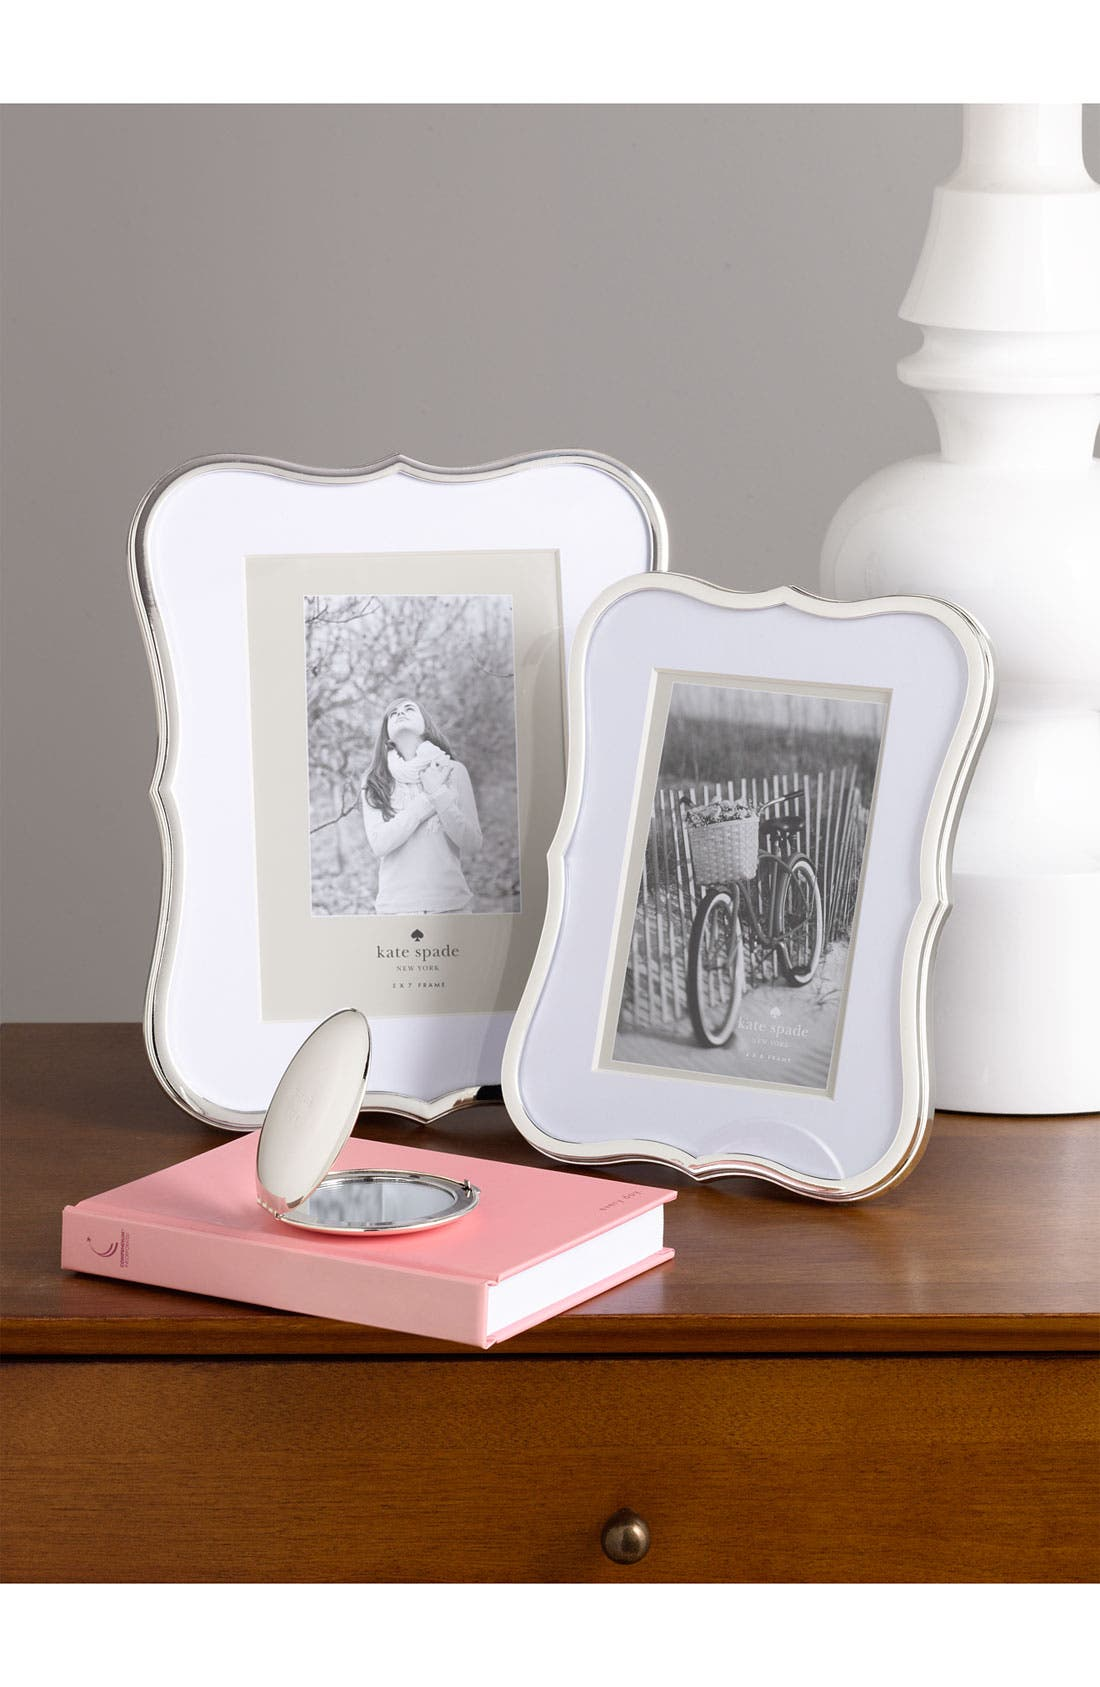 ,                             crown point picture frame,                             Alternate thumbnail 6, color,                             NO COLOR